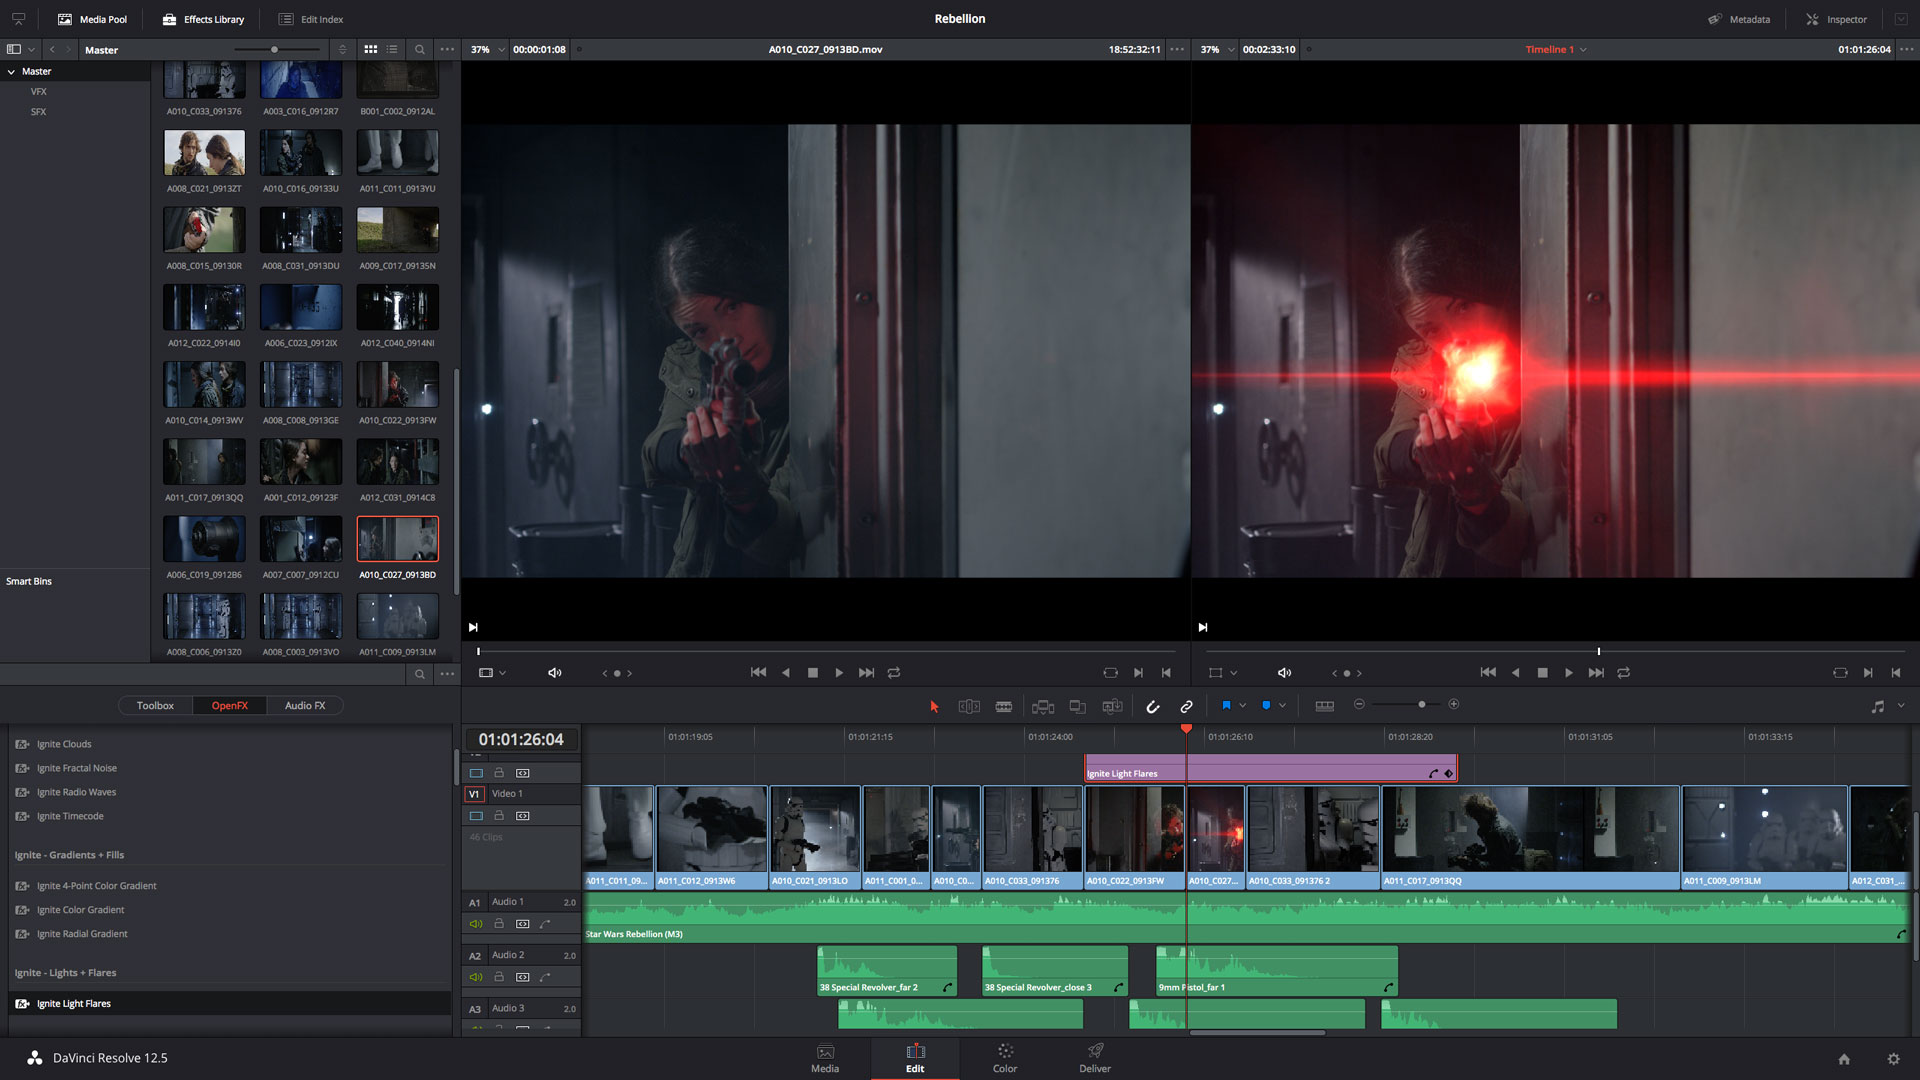 effect and pro Check out the new immersive video effects in after effects and premiere pro cc 2018 in this tutorial including free 360 footage.